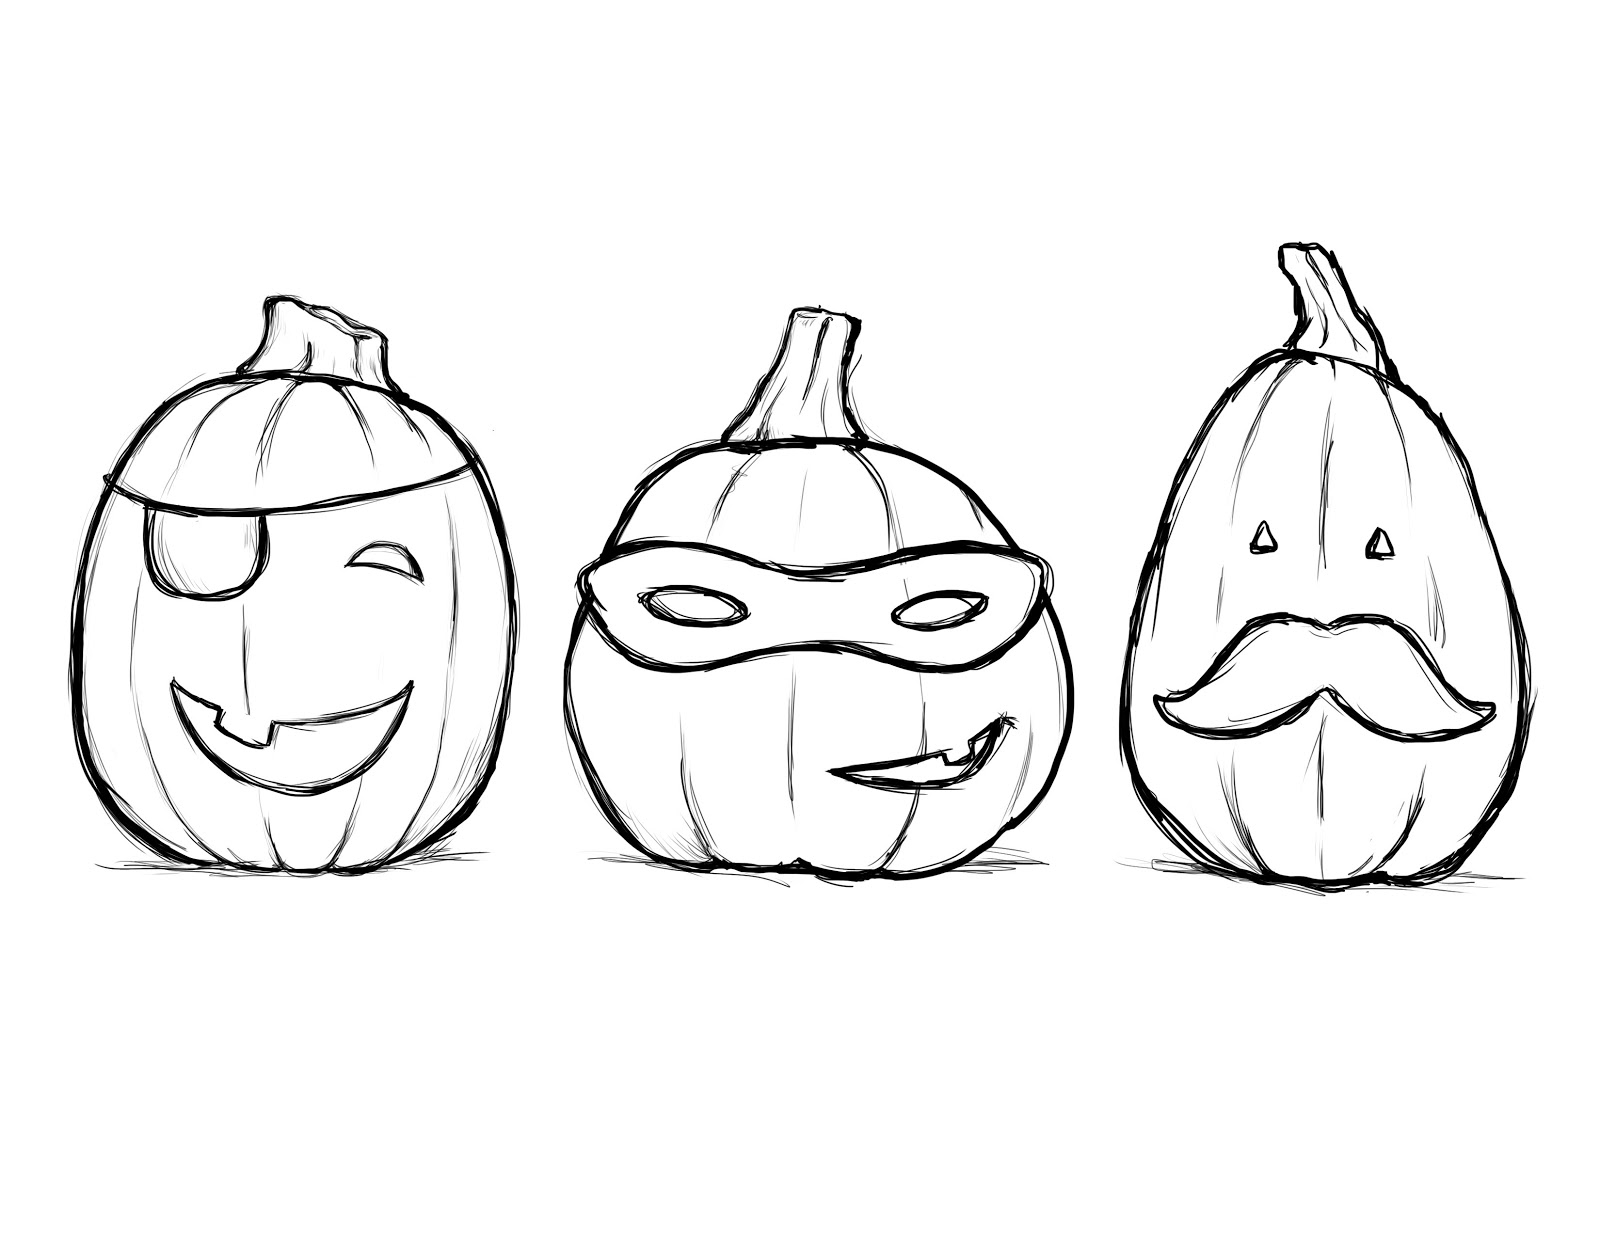 coloring pumpkin halloween clipart 50 free printable halloween coloring pages for kids halloween pumpkin coloring clipart